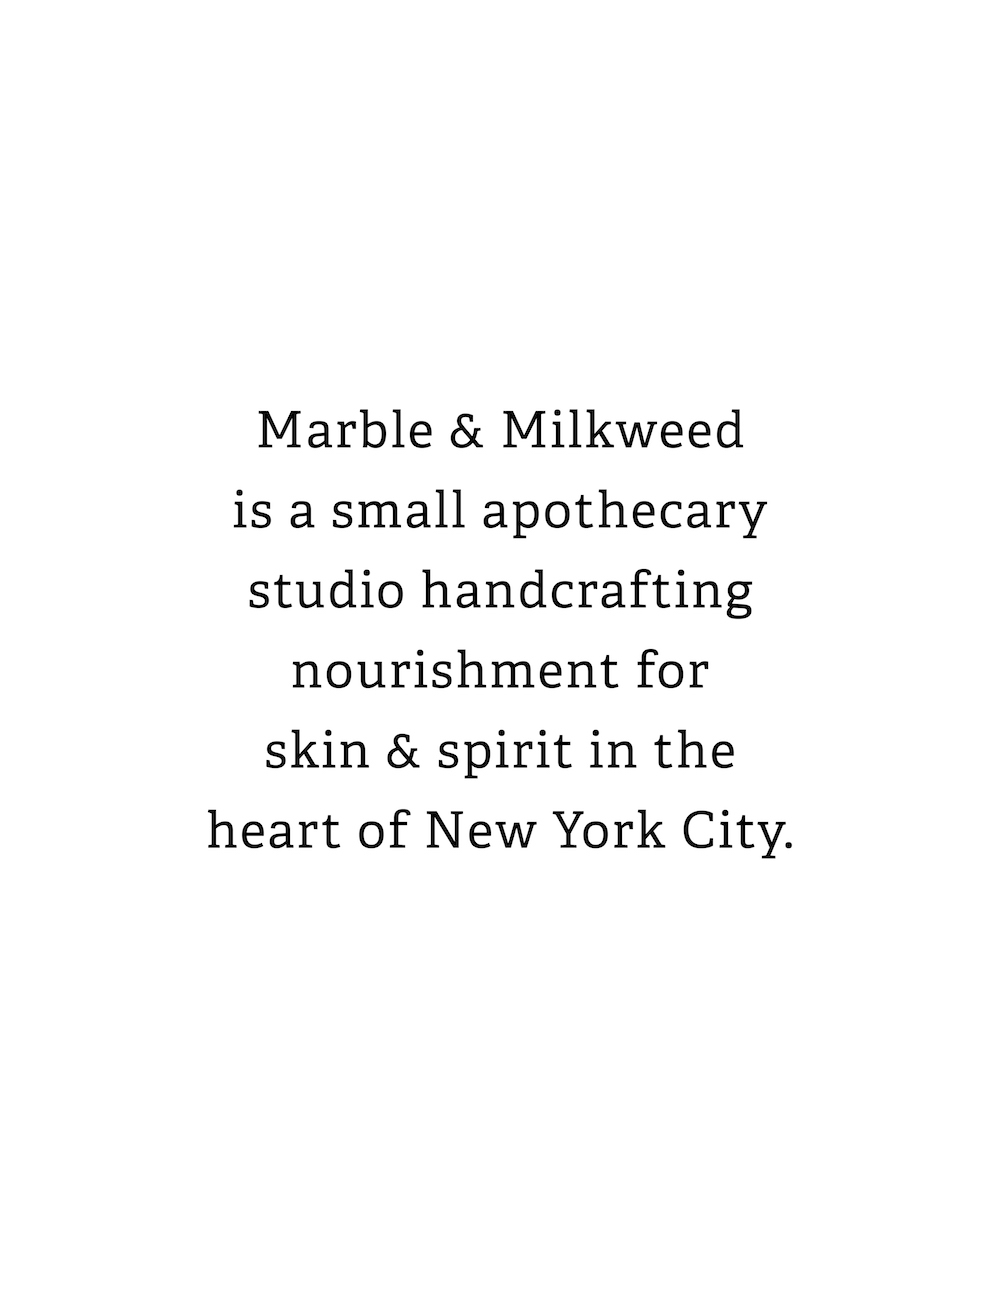 marble & milkweed about blurb for website june 2018 draft 2.jpg